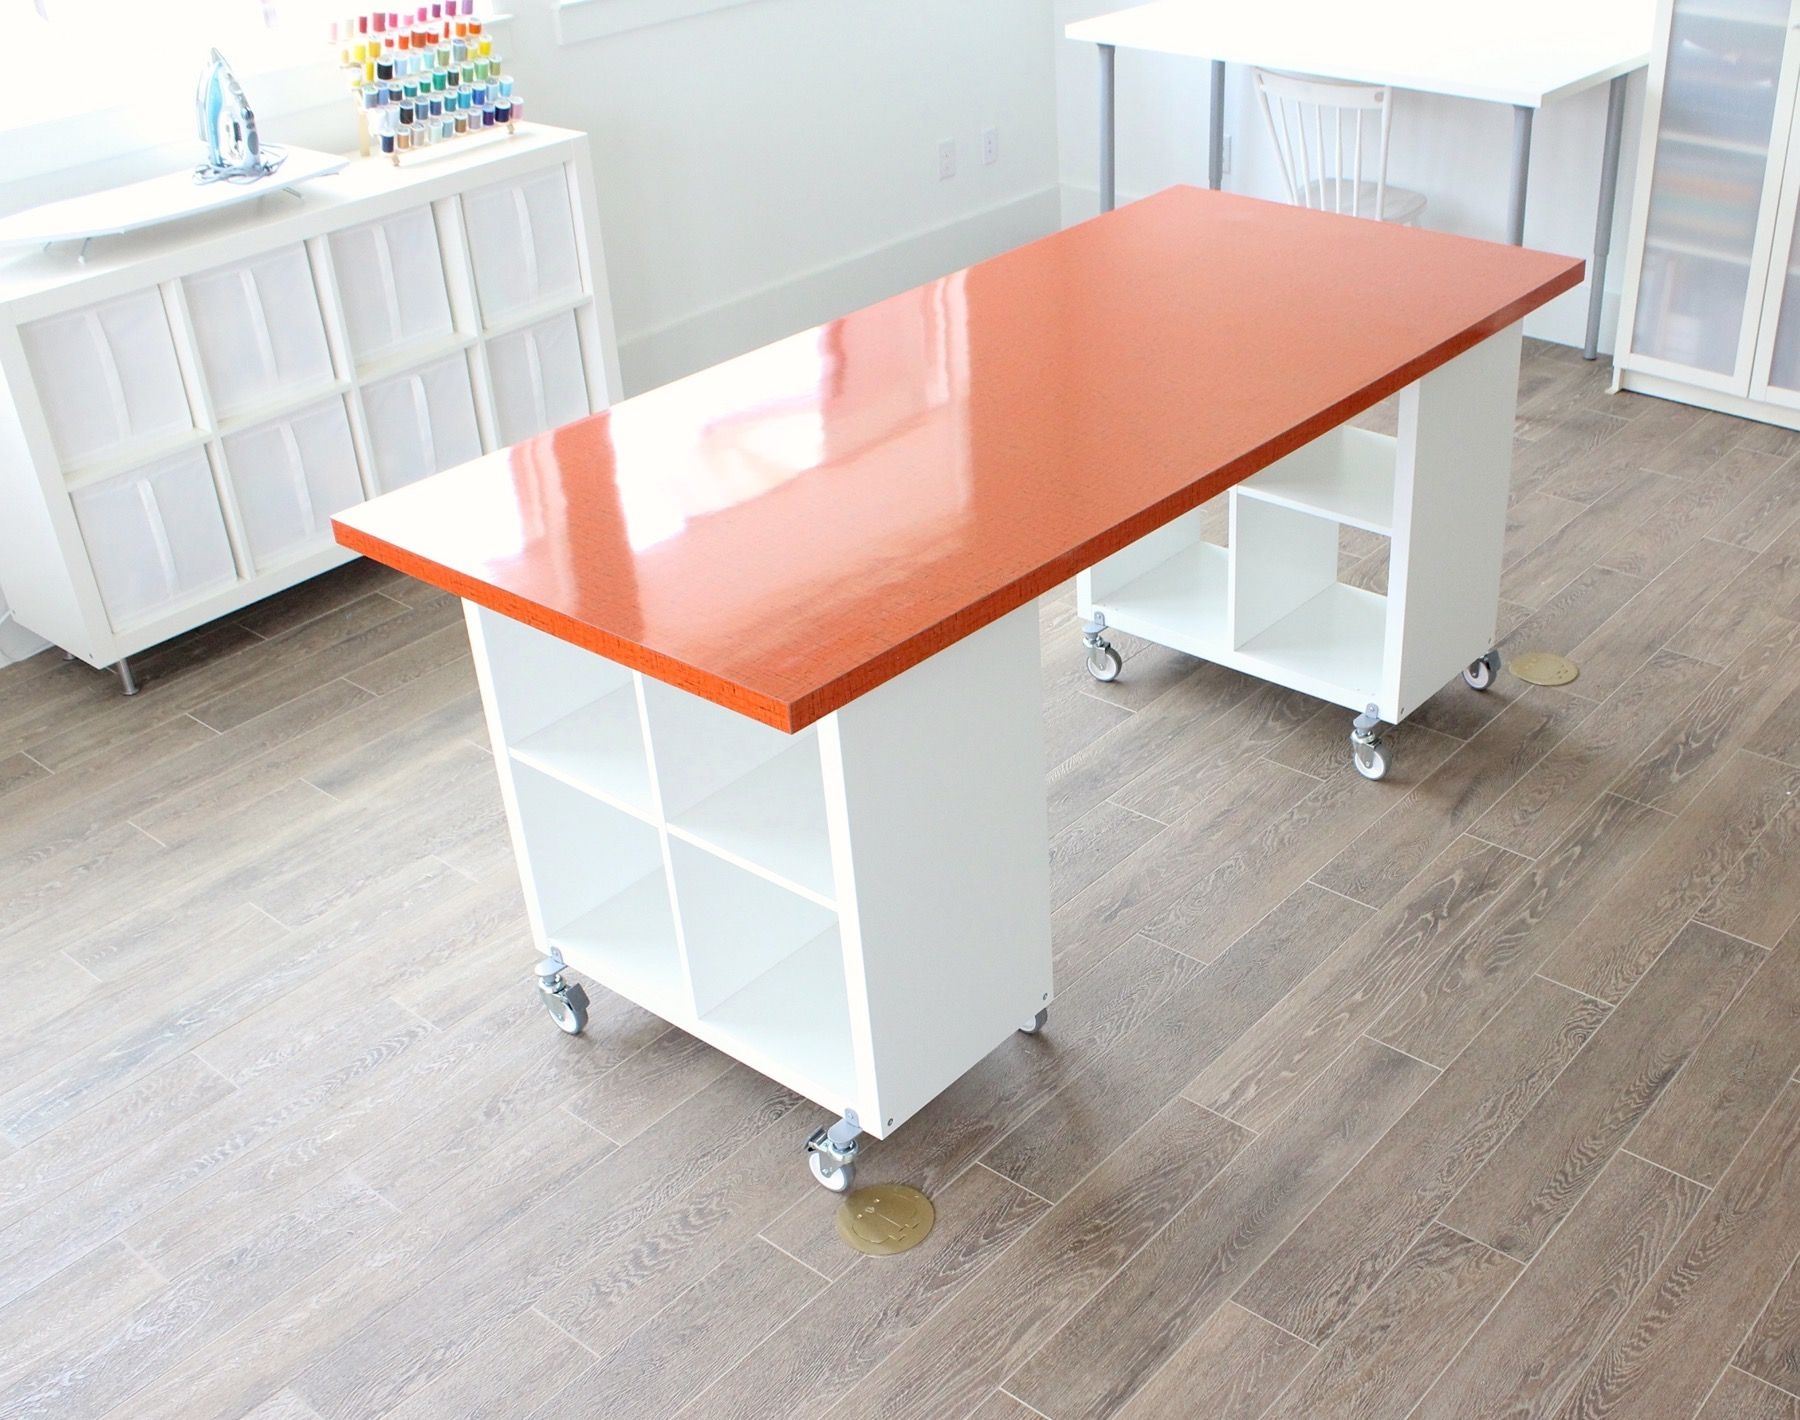 Building a new home the formica craft table made Table making ideas